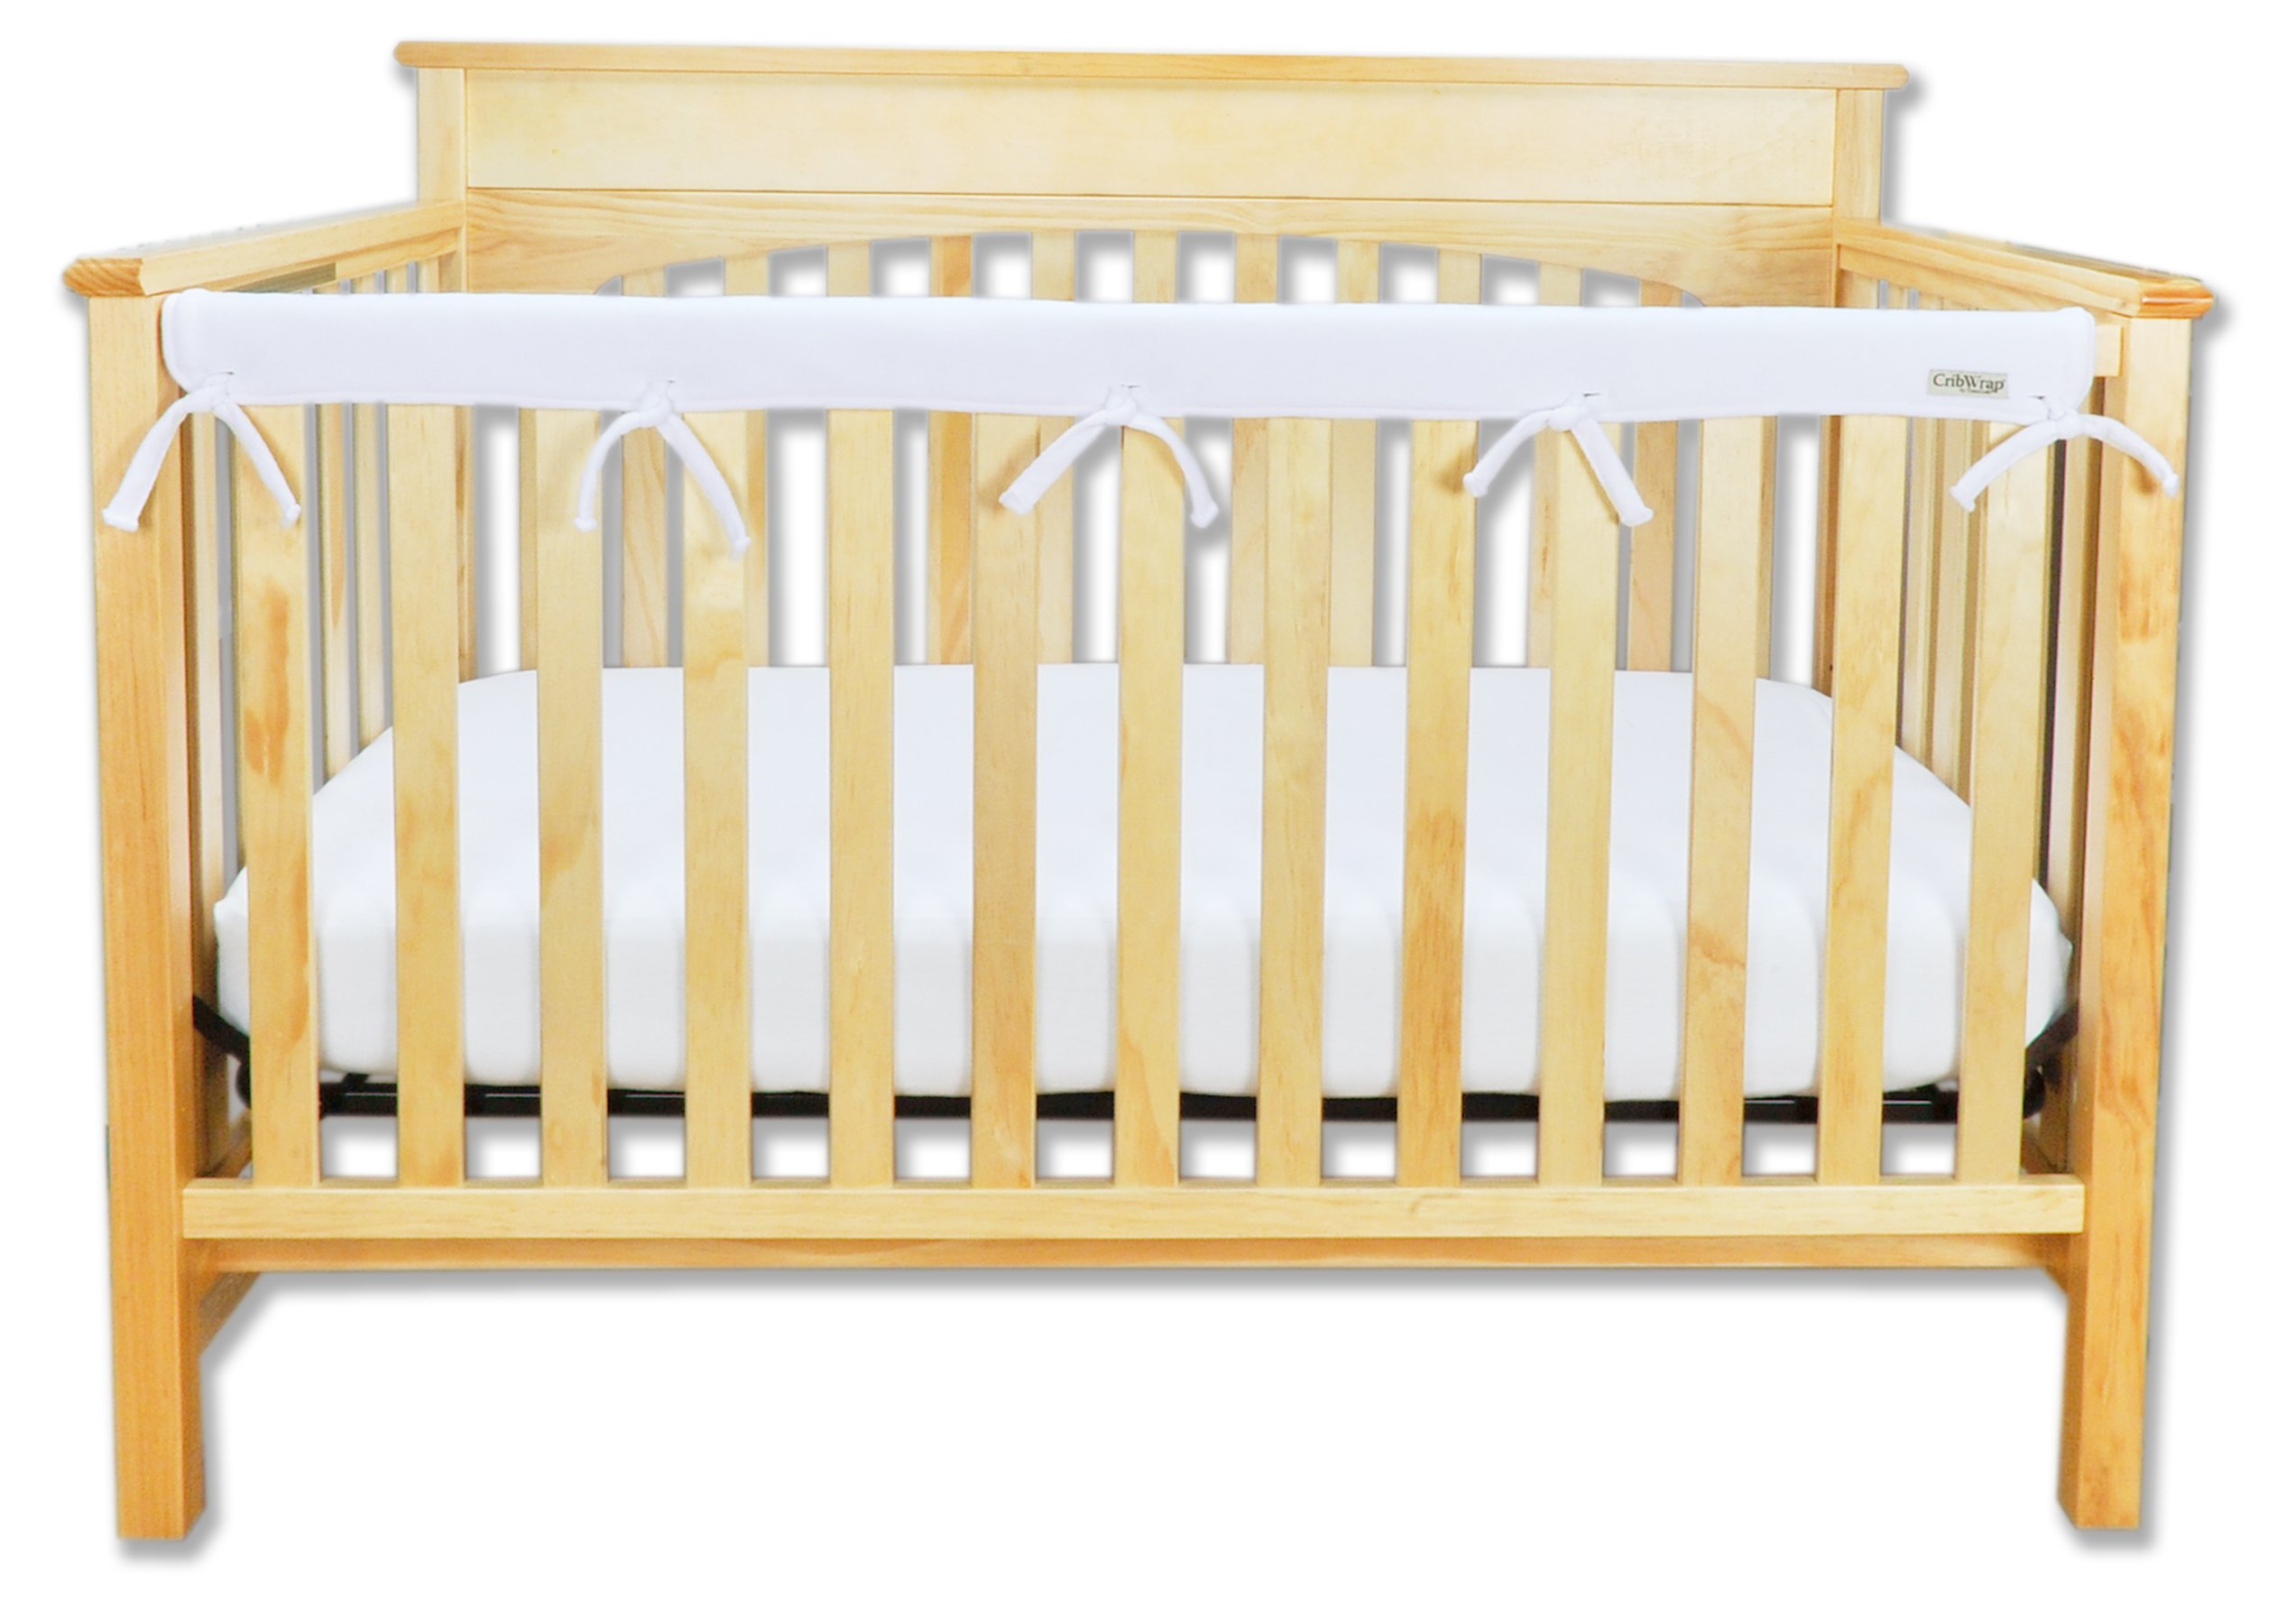 Trend Lab Waterproof CribWrap Rail Cover - for Narrow Long Crib Rails Made to Fit Rails up to 8'' Around by Trend Lab